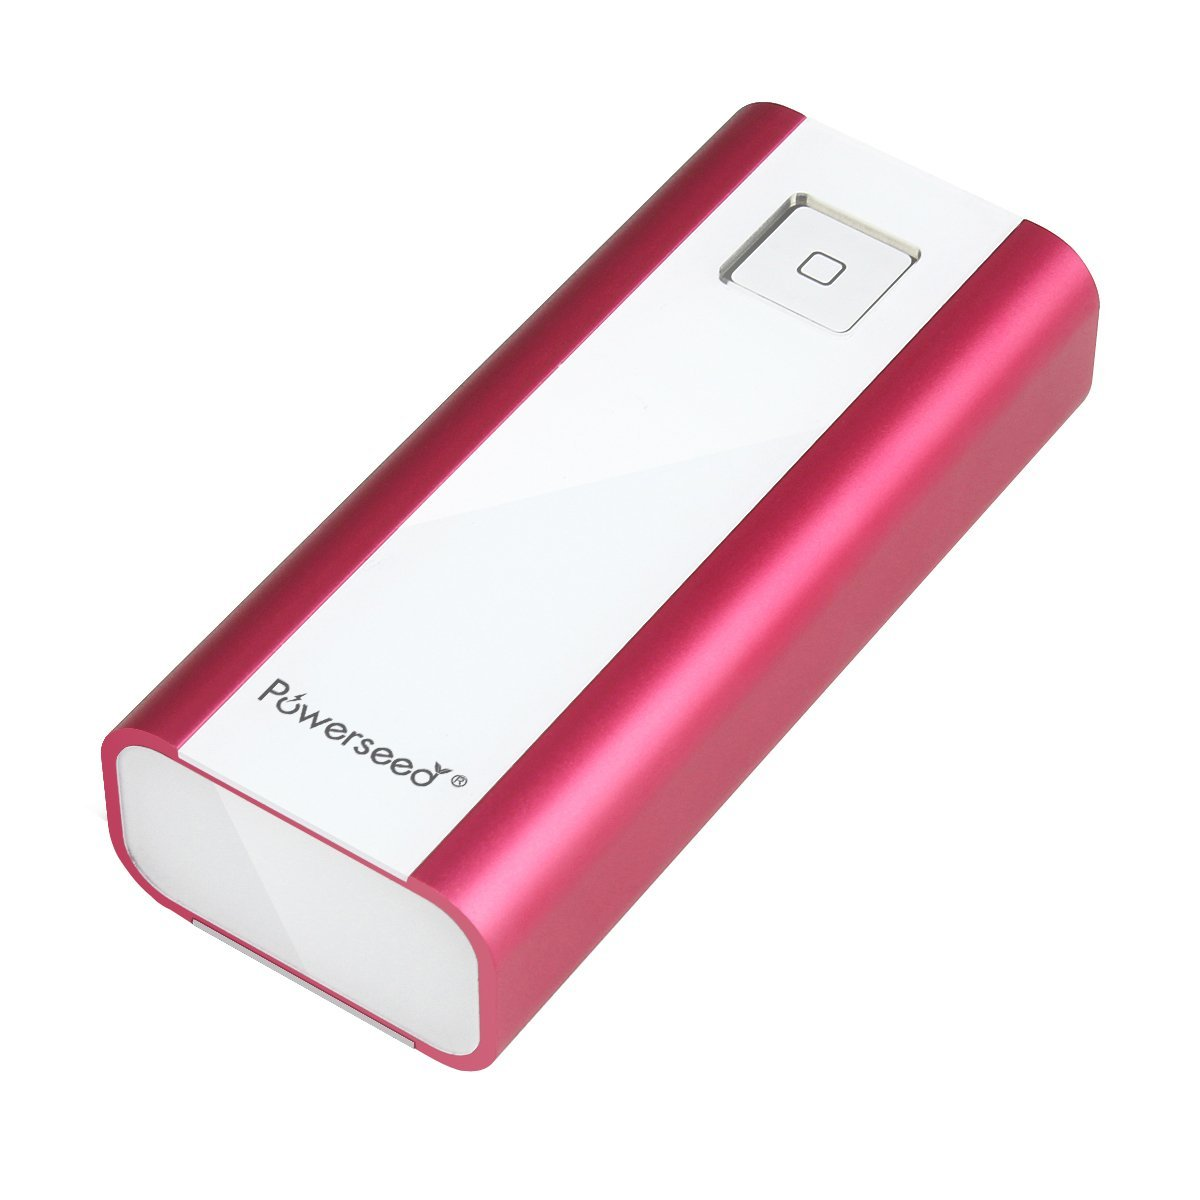 Powerseed Bank / Executive Pro PS4800 Fuchsia Pink Power Bank USB Portable Charger with LED flashlight for Samsung Galaxy S6, S5, Samsung Gear, Note 4, Apple Watch, iPhone 4, iPhone 5, iPhone 5S, iPhone 5C, iPhone 6, iPhone 6 Plus, Android Phones, iPad, Android Tablet, Windows Tablet, Go Pro Hero